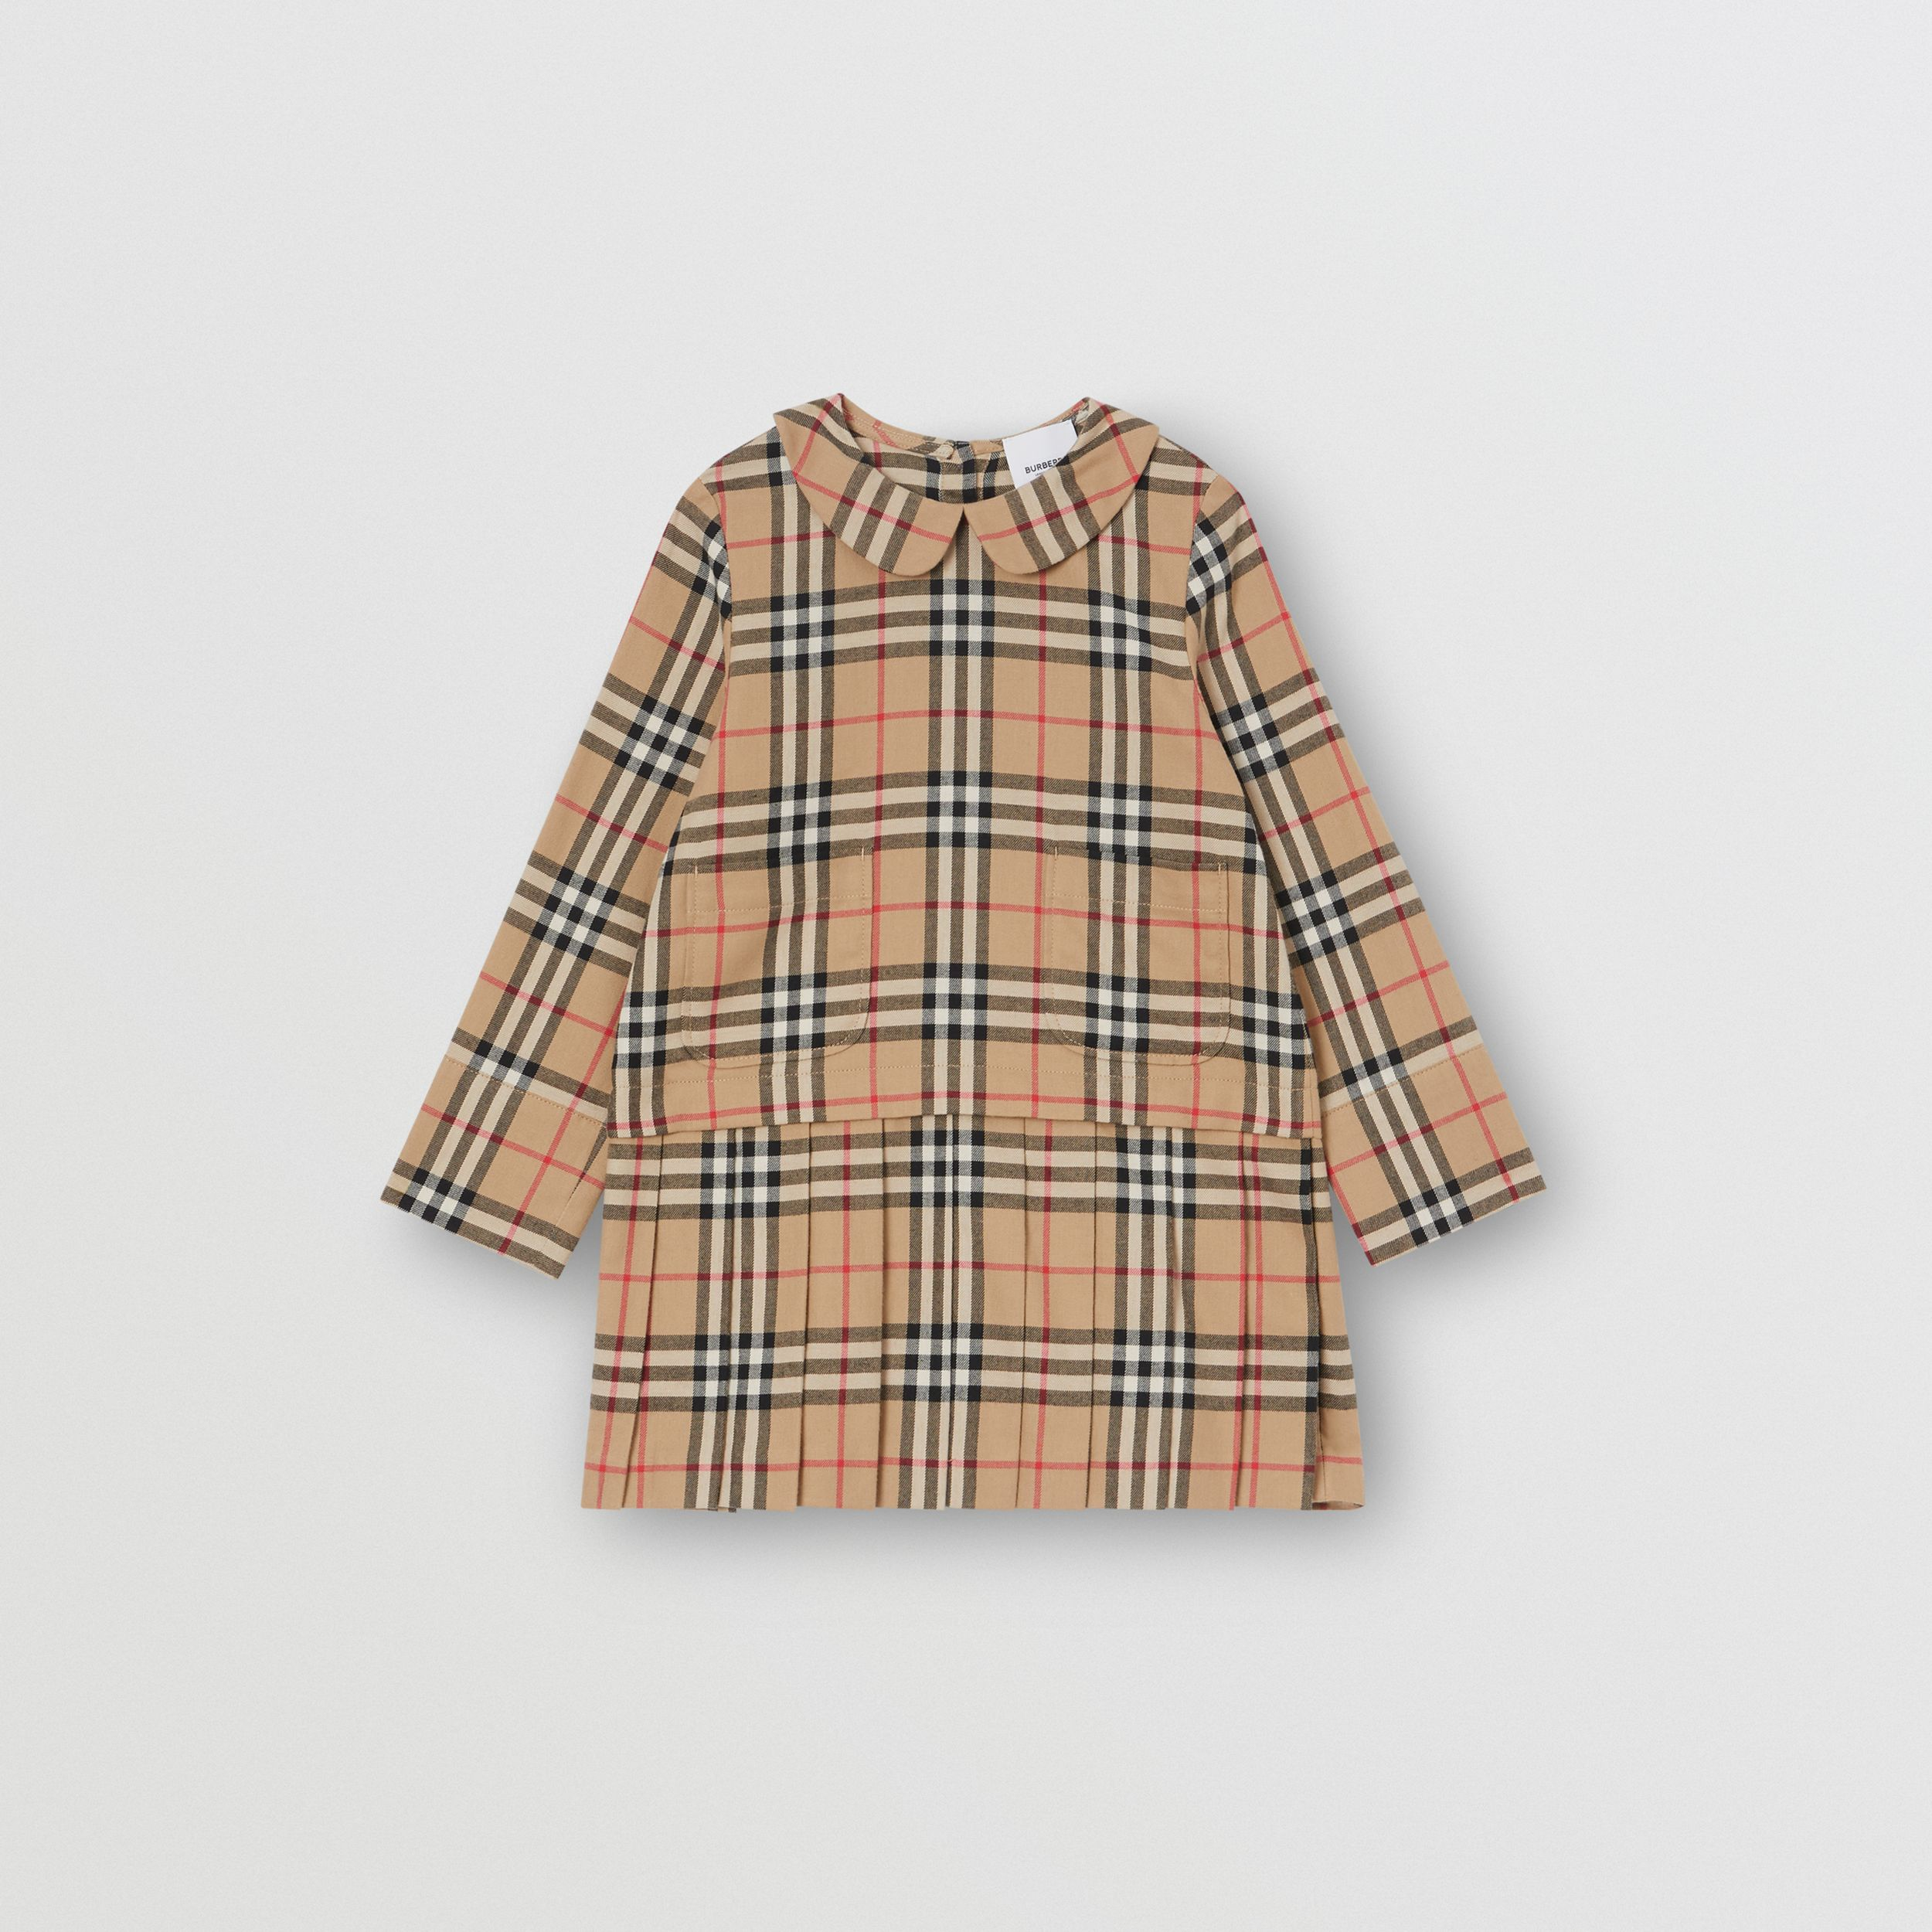 Peter Pan Collar Vintage Check Cotton Dress in Archive Beige | Burberry United Kingdom - 1